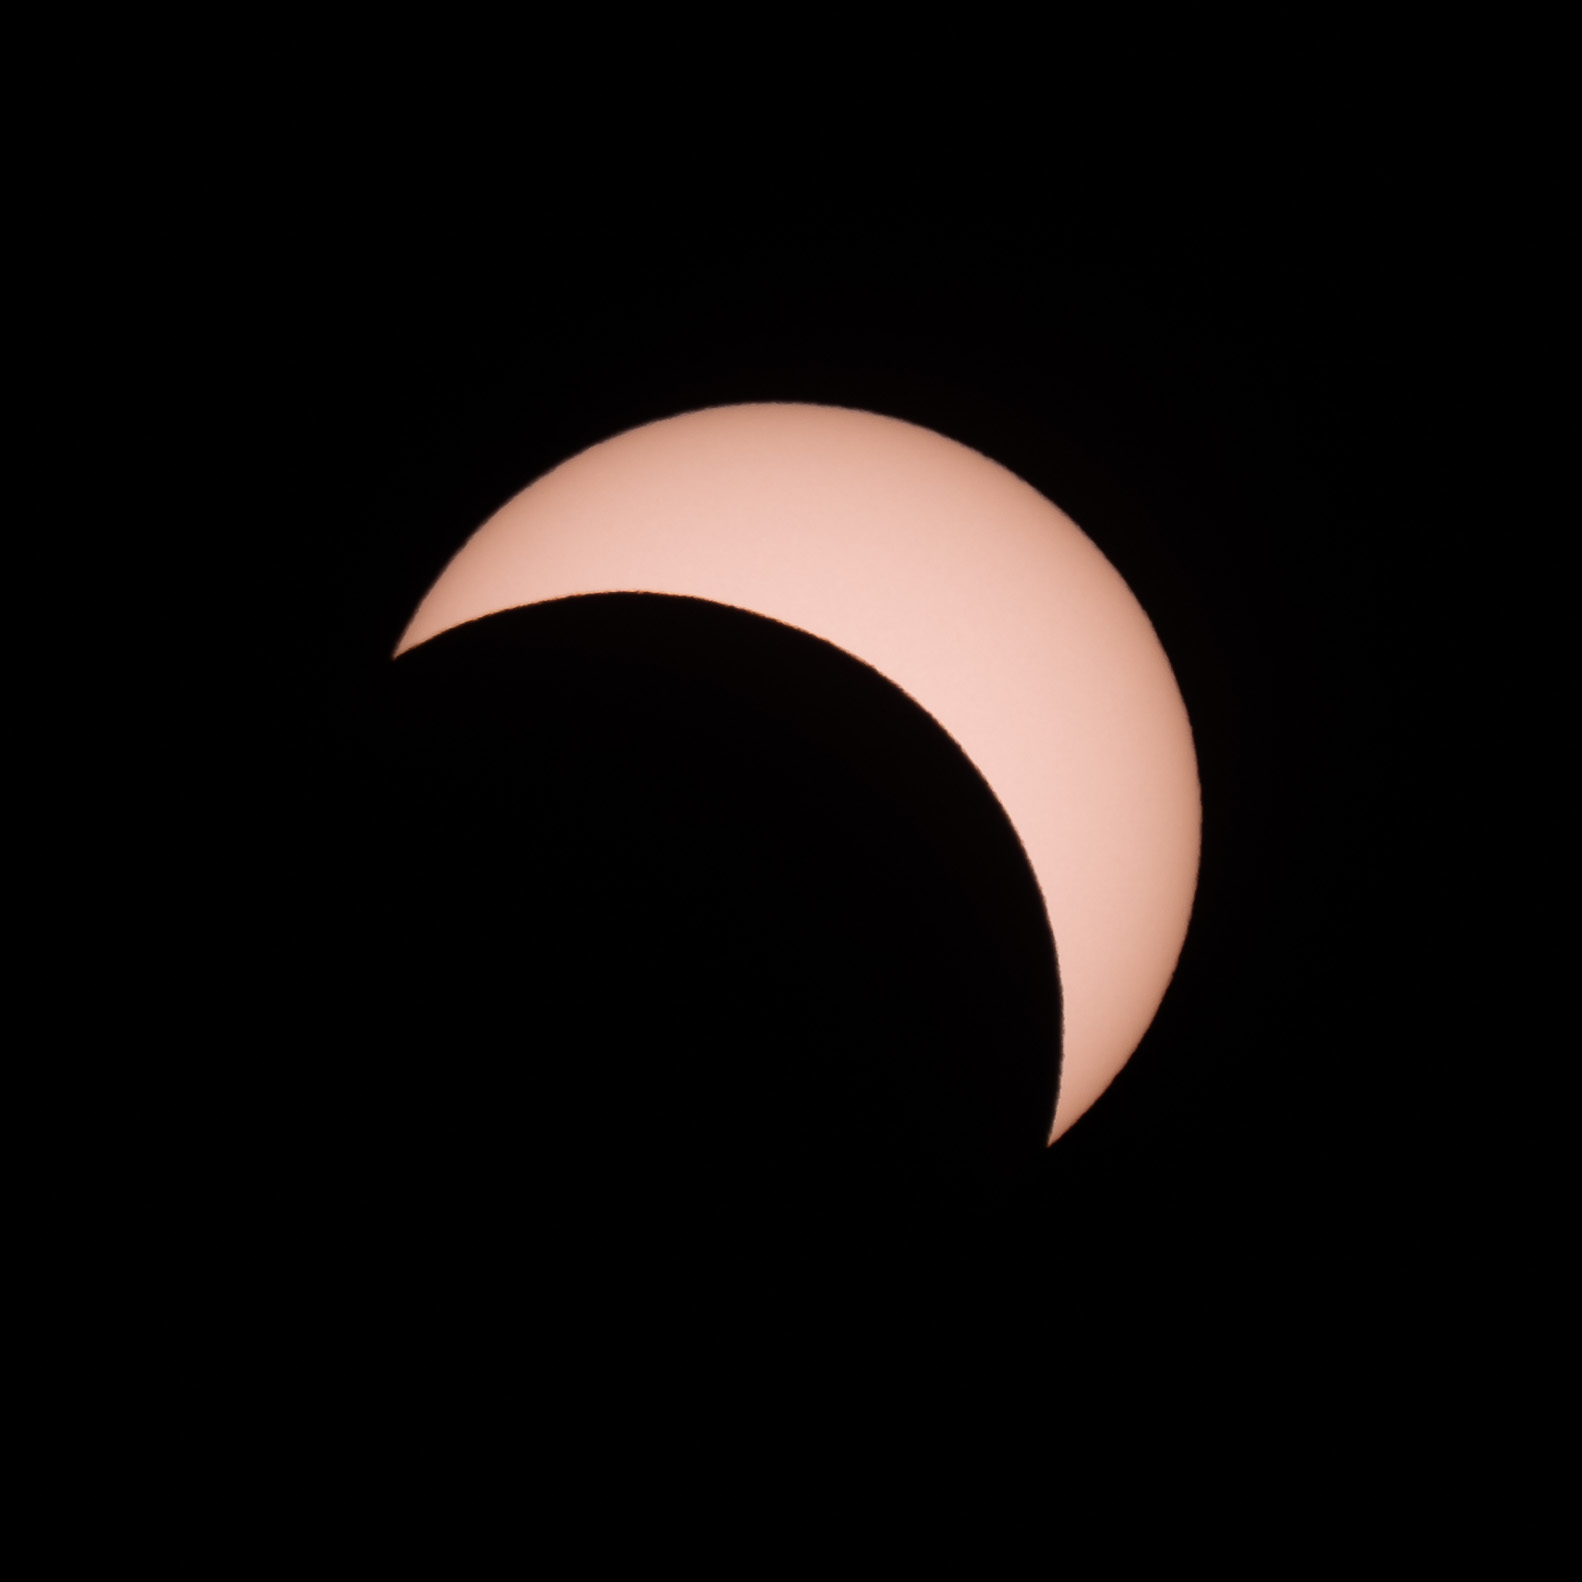 Partial Eclipse - f/11 | ISO100 | 1/500 secs + solar filter